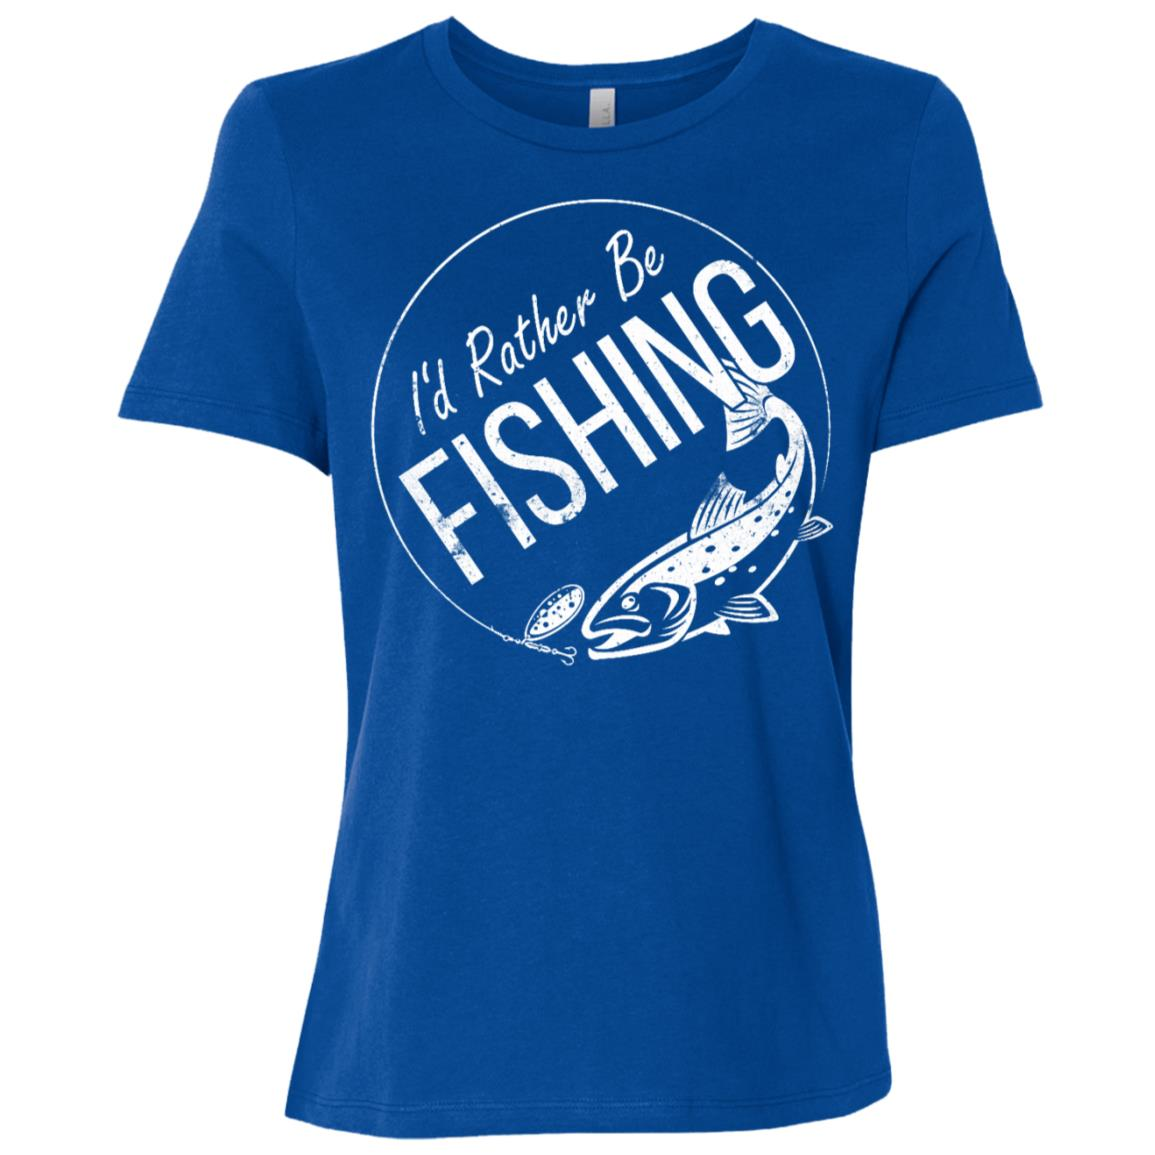 I'd Rather Be Fishing Camping Funny Camping -5 Women Short Sleeve T-Shirt